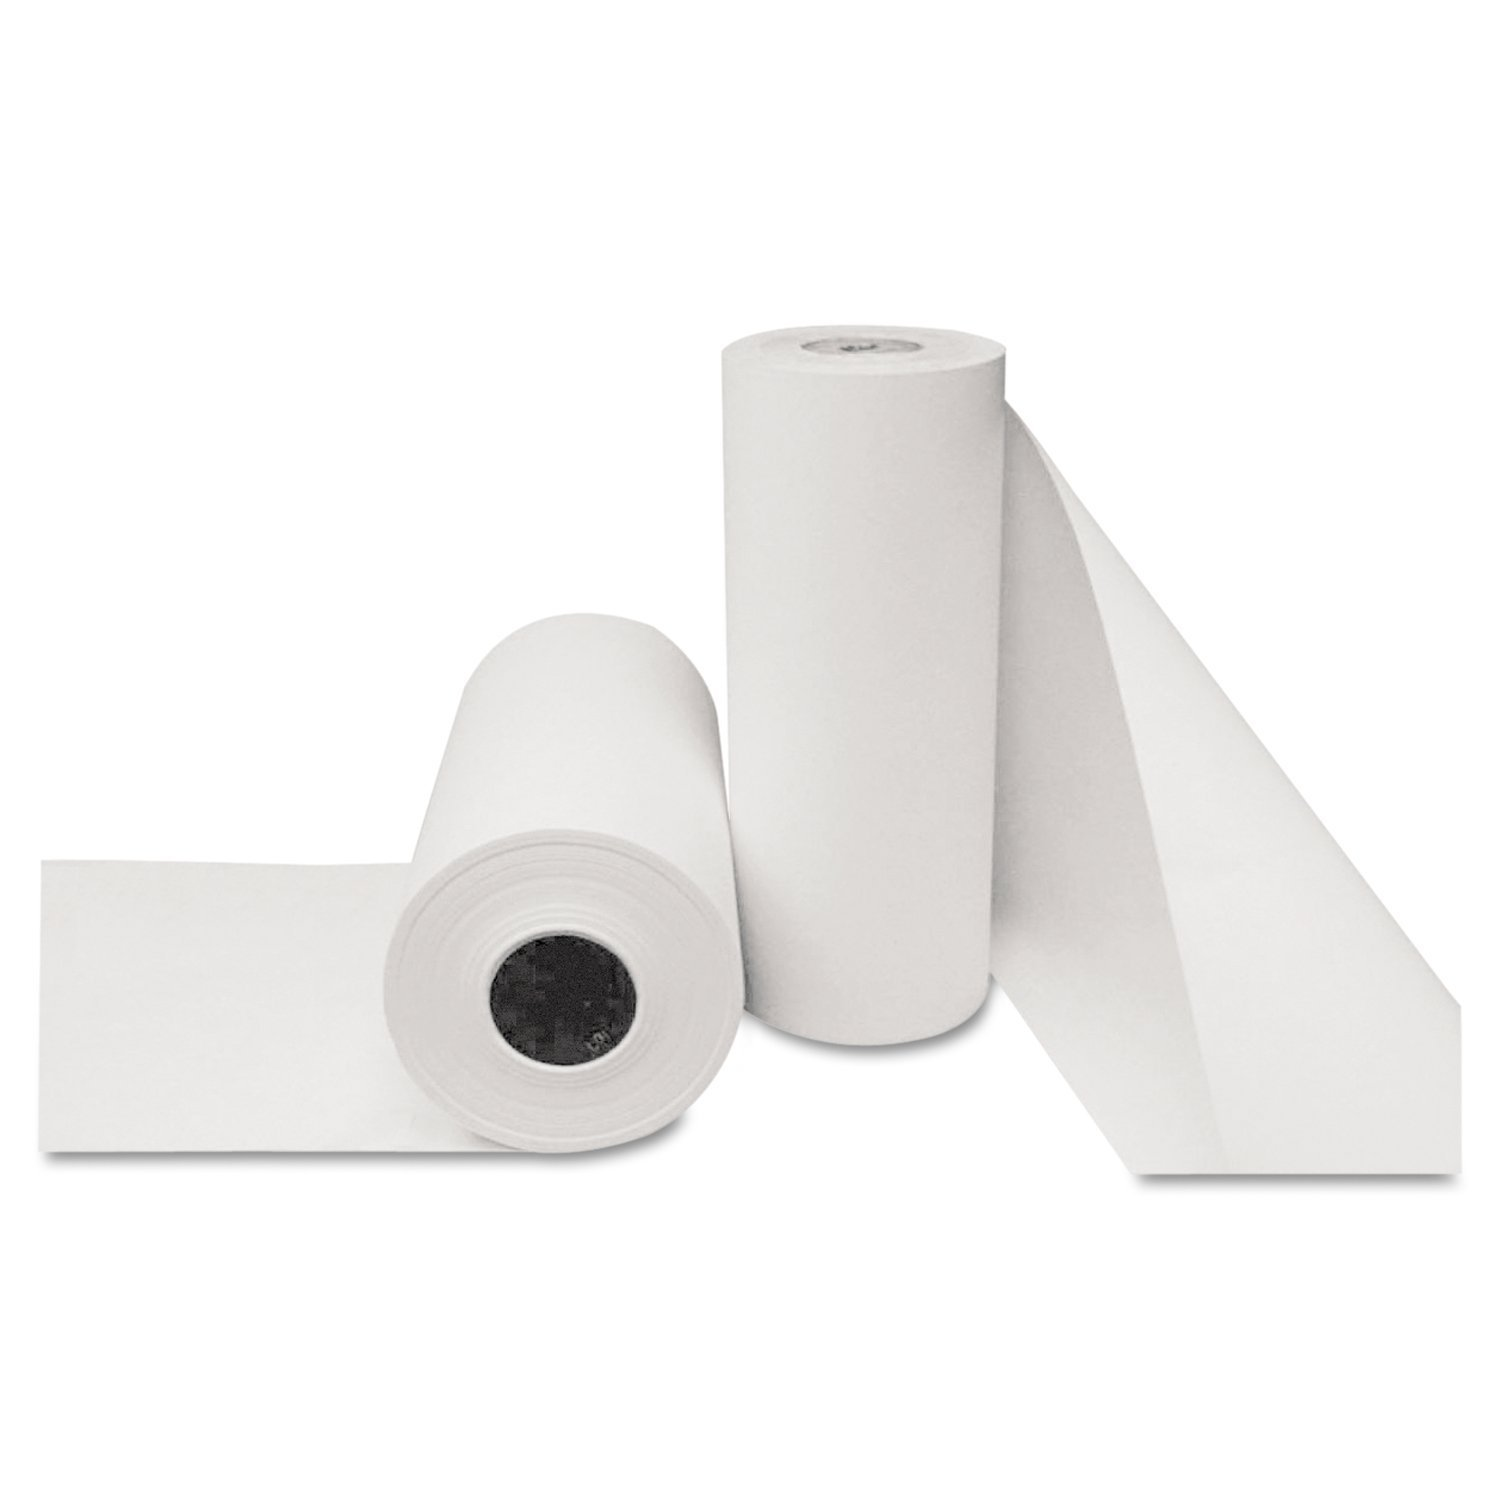 """B3640720 Butcher Paper, 36"""" x 720 ft, White Roll, Materials Paper By Boardwalk by"""